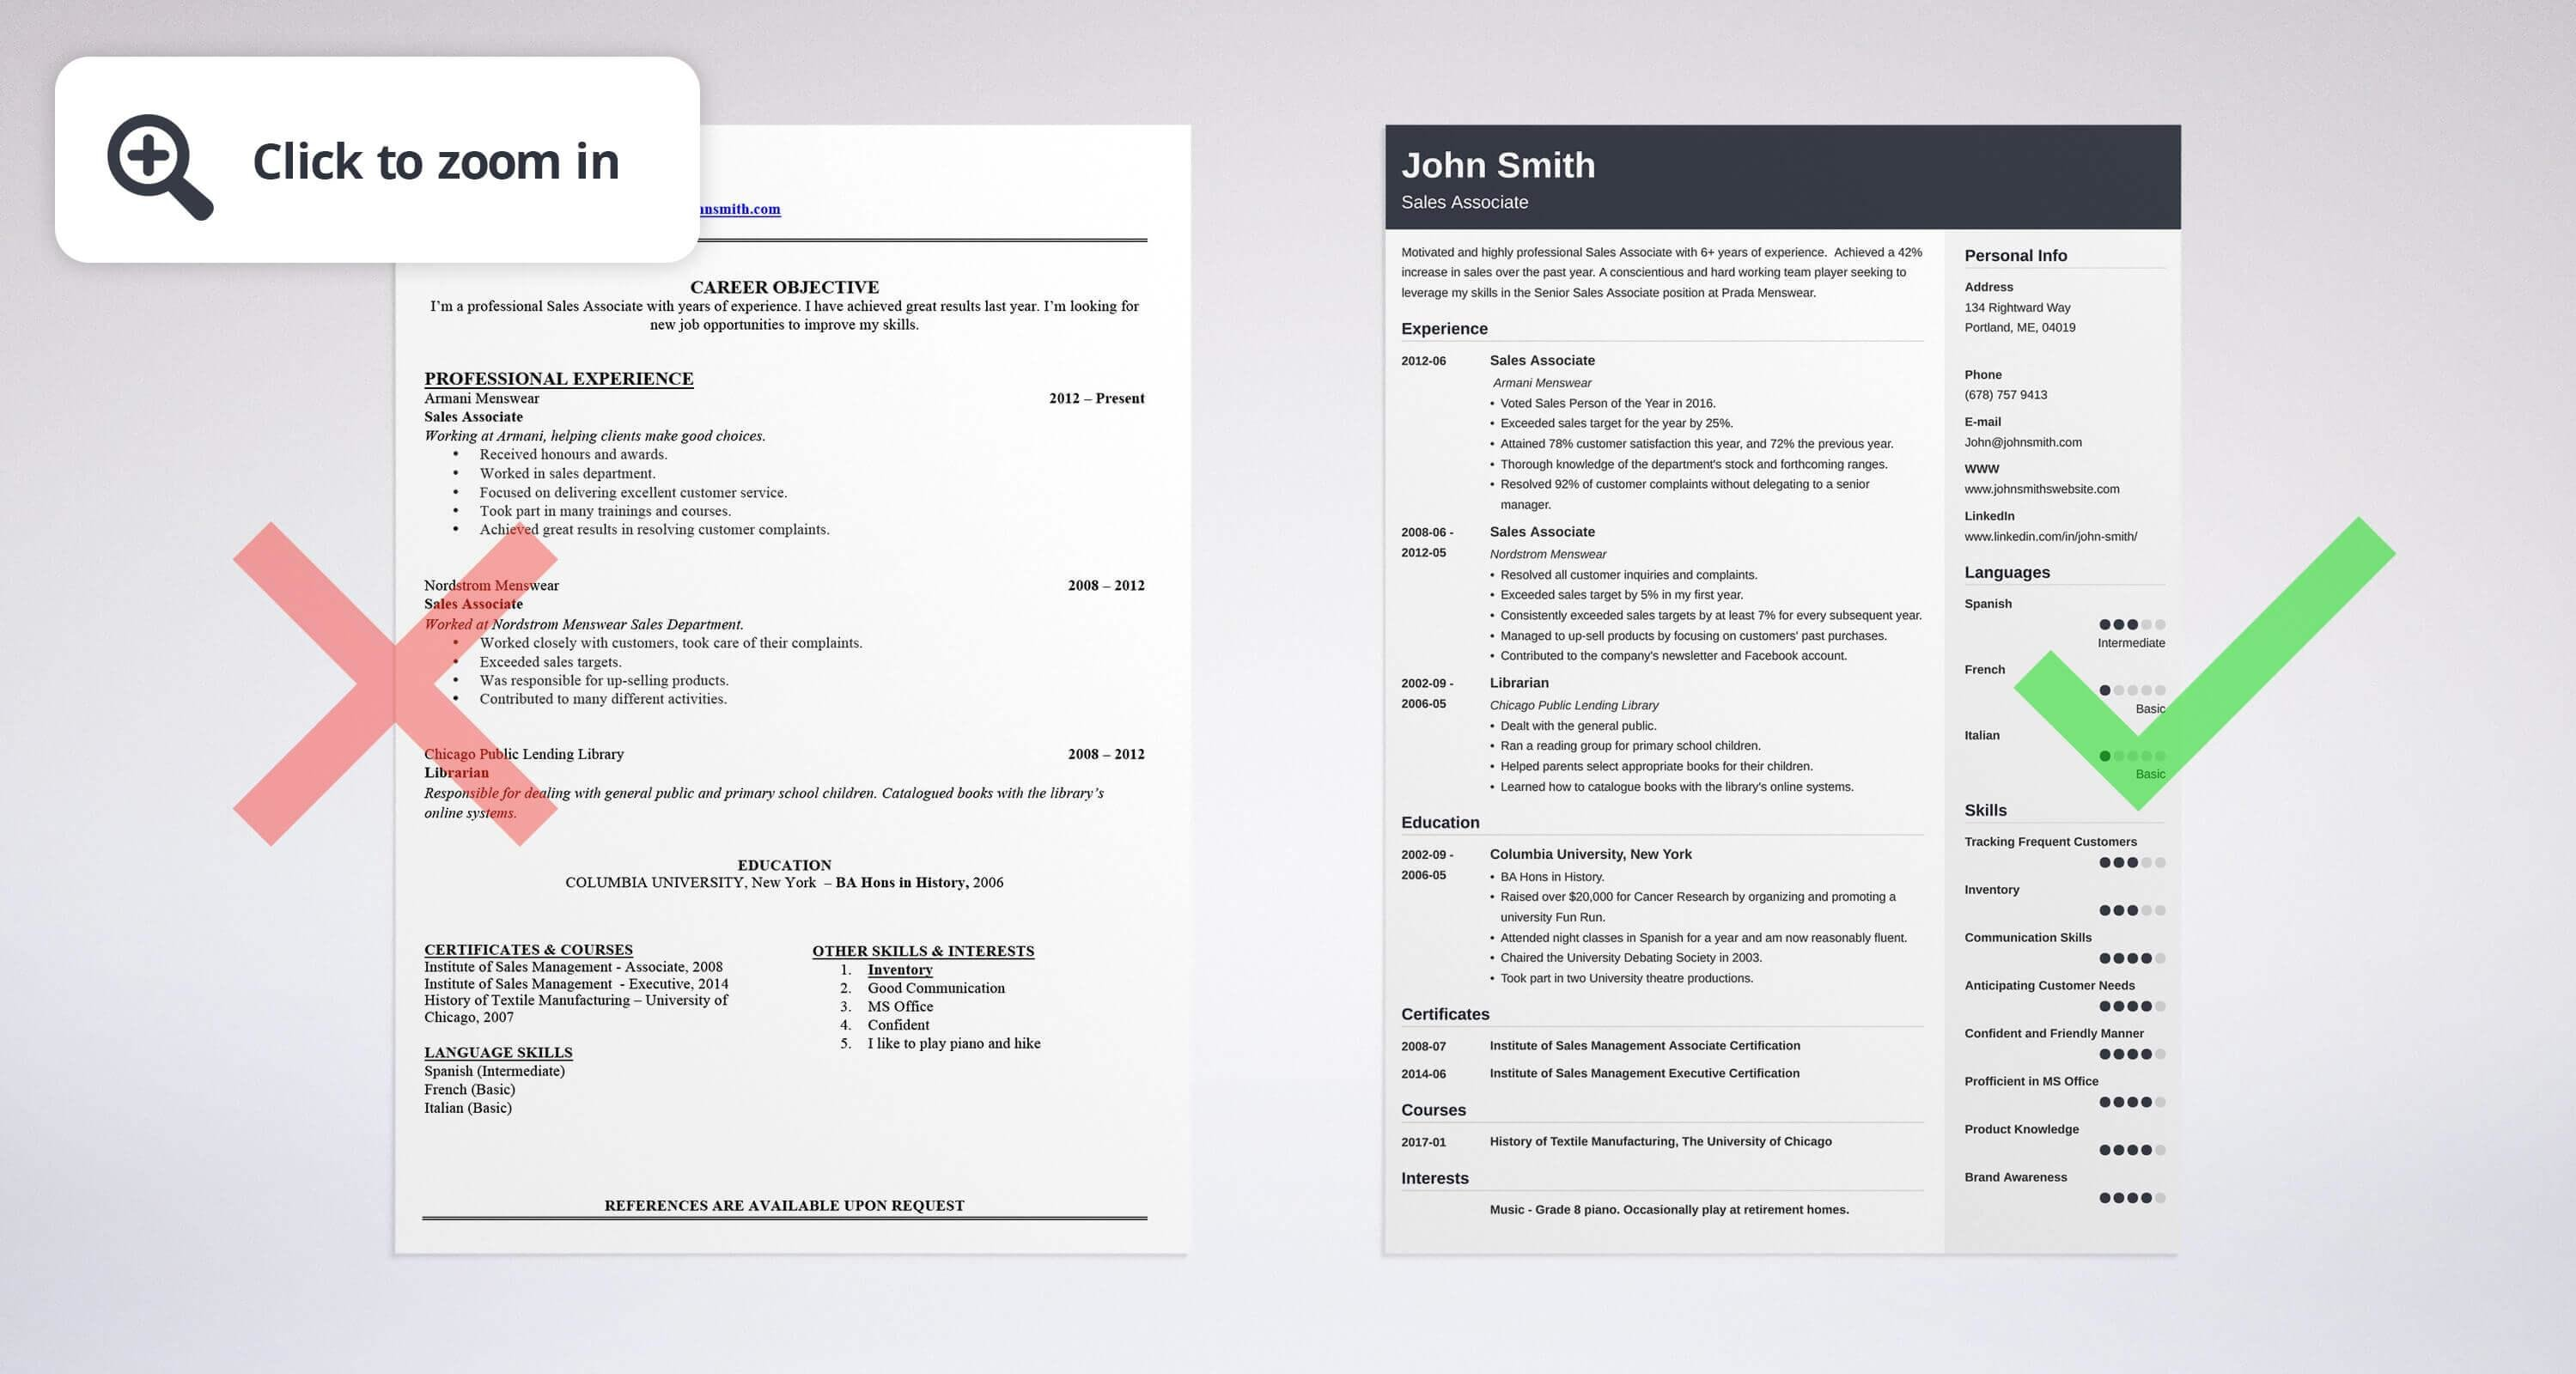 Superior Uptowork With Skills For A Job Resume